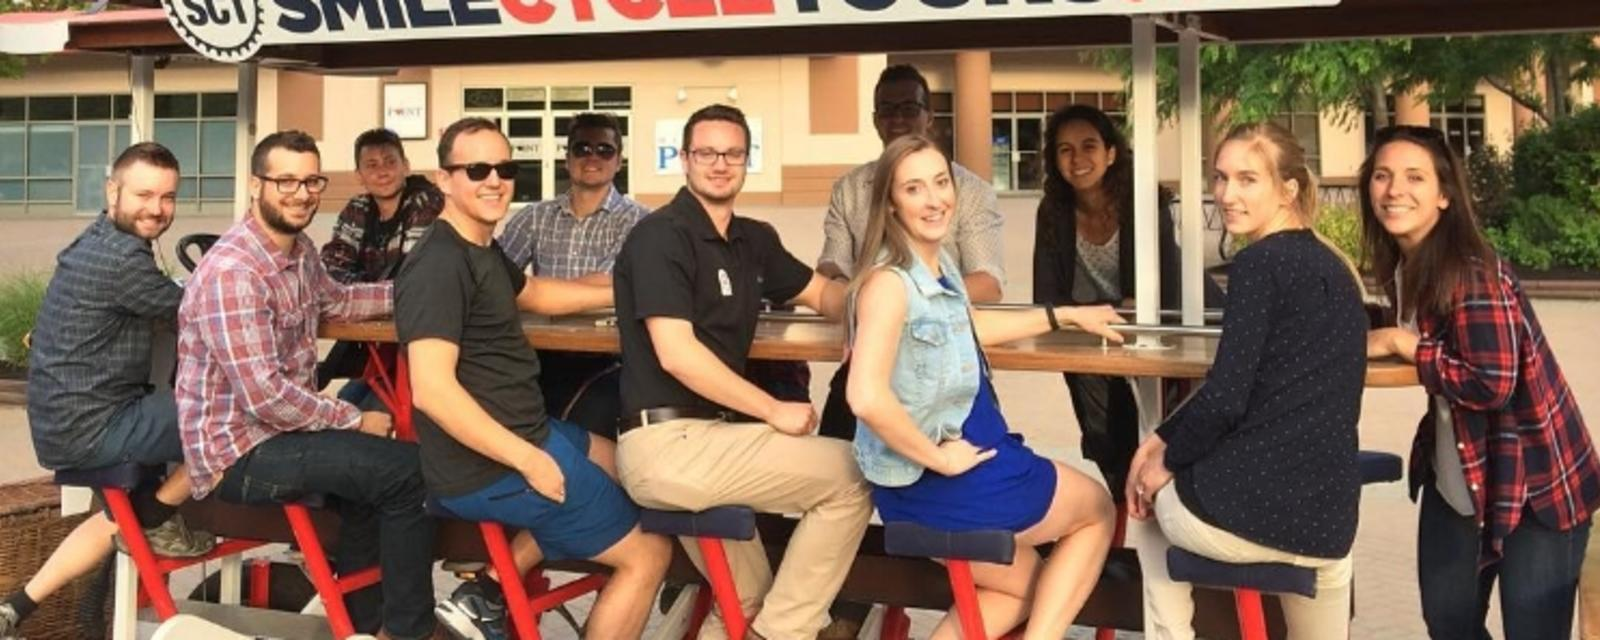 6 Off-Site Team Bonding Ideas For Your Next Corporate Event